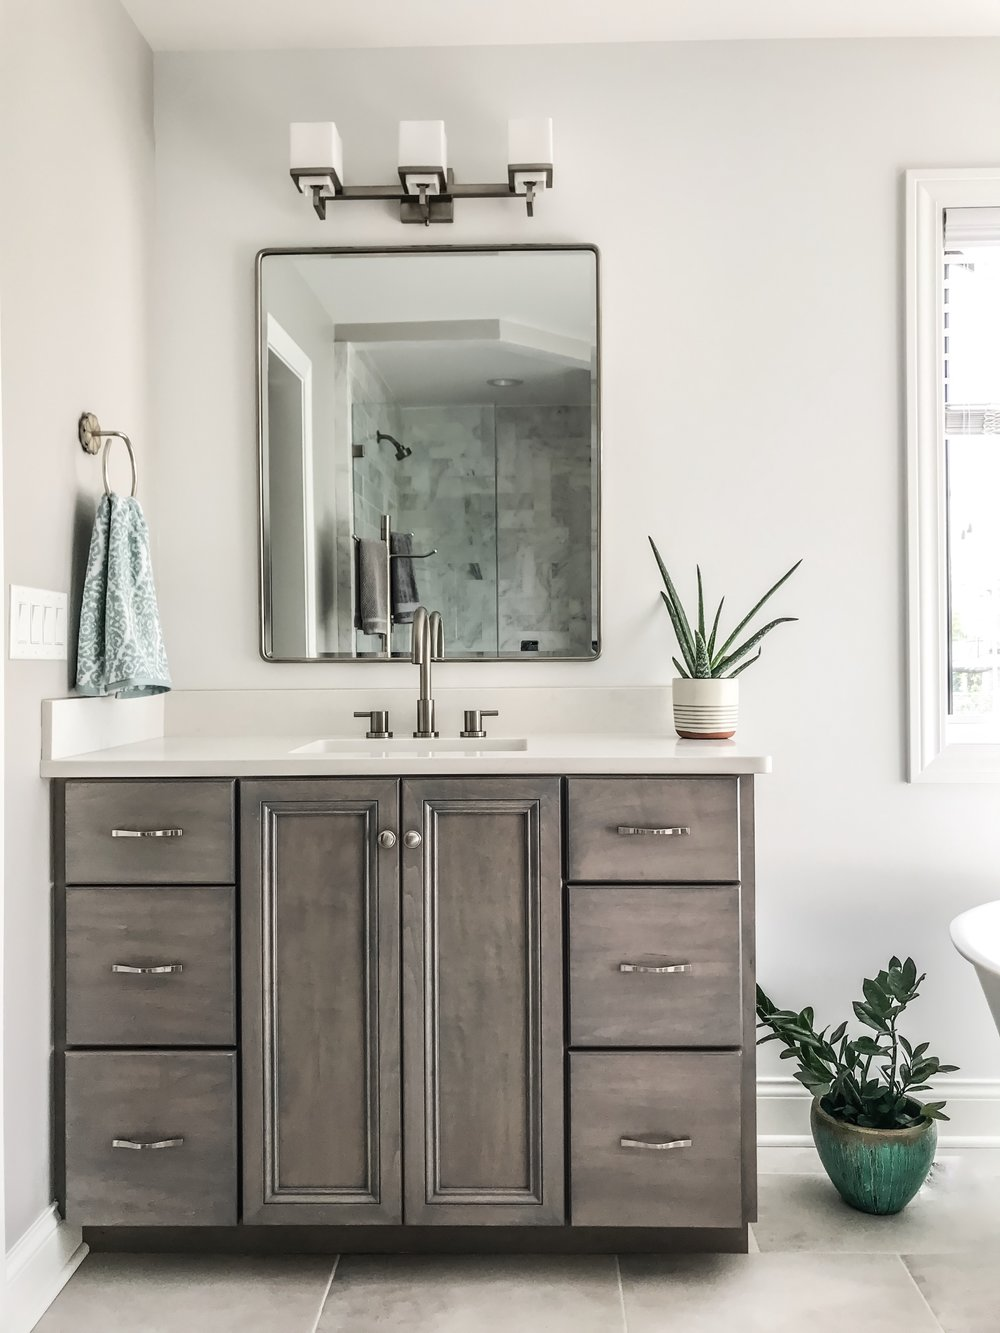 Avoid These Two Major Mistakes When Buying Bathroom Vanity Mirrors ...